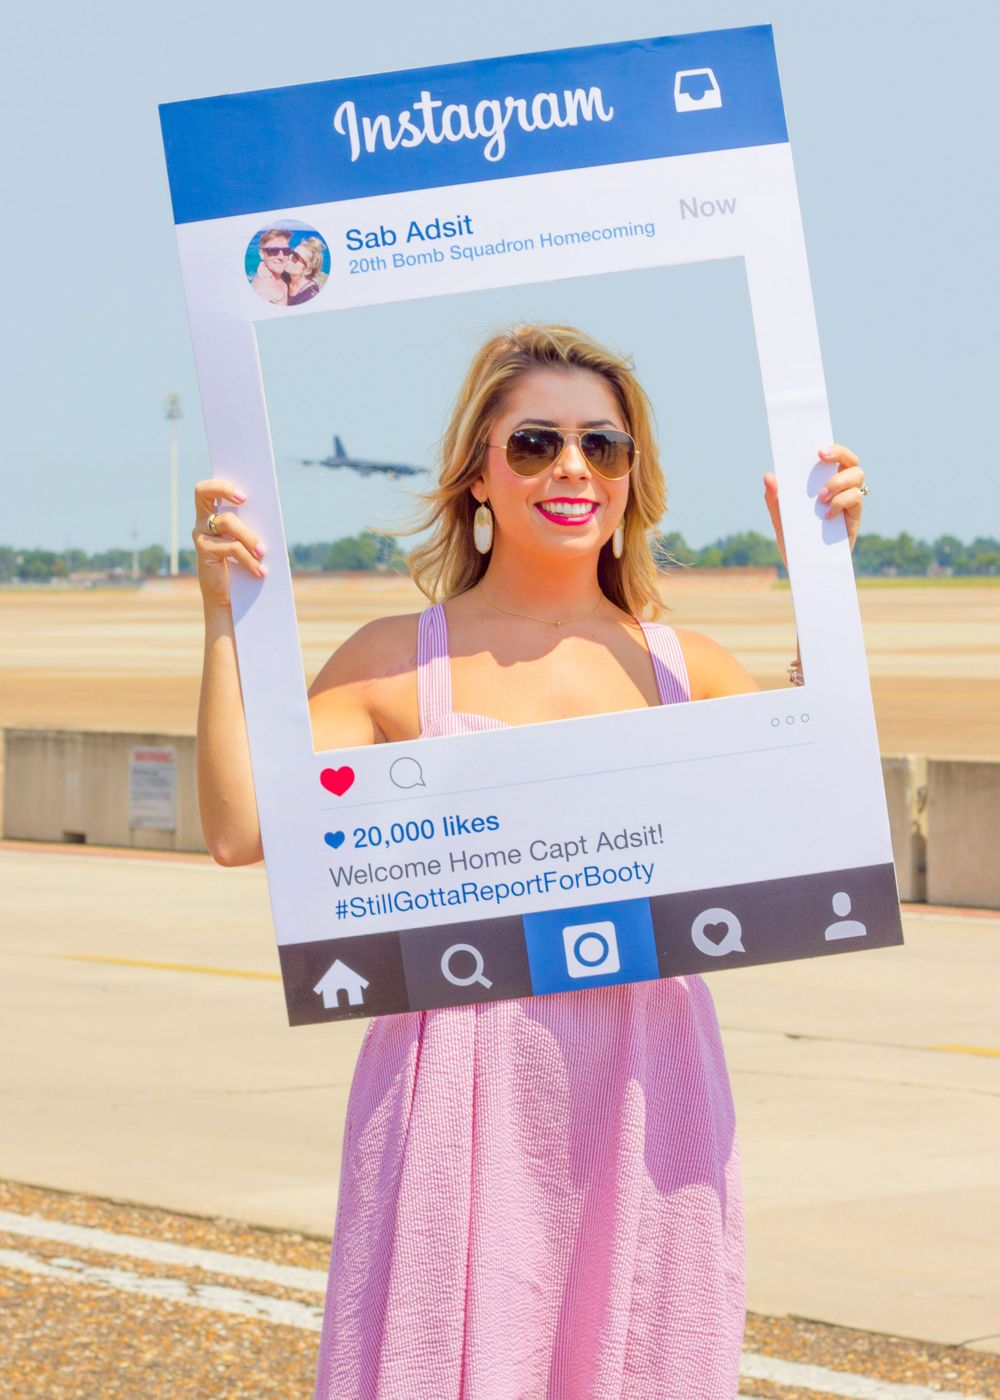 Instagram military homecoming B52 BUFF wife waiting for husband